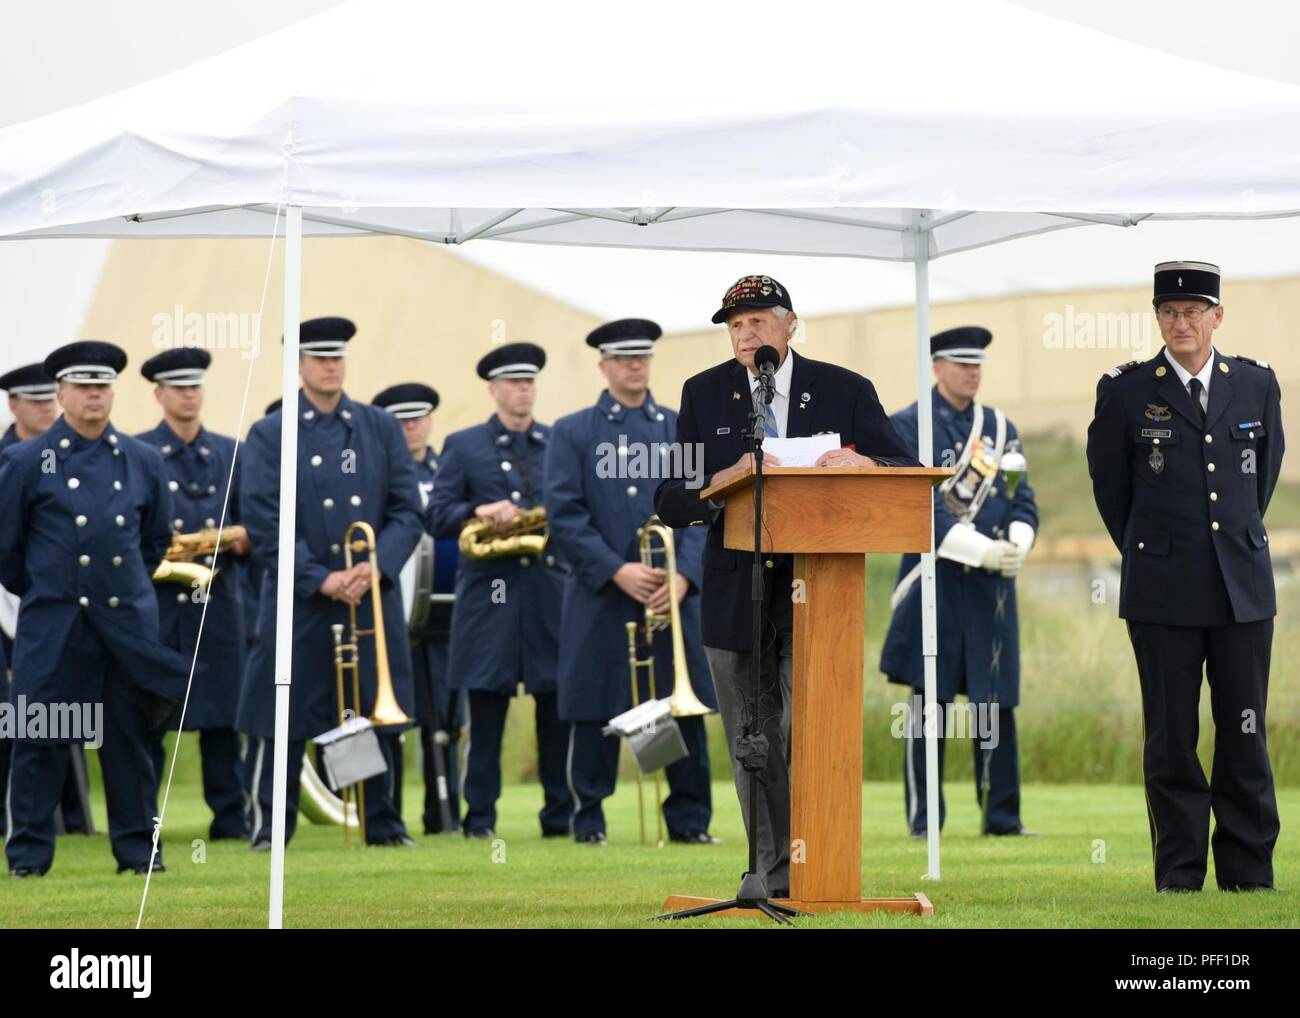 SAINTE-MARIE-DU-MONT, France (June 6, 2018) D-Day veteran Steve Melnikof speaks during the Utah Beach Federal Monument Ceremony. This year marks the 74th anniversary of Operation Overlord, the Allied invasion of Normandy on June 6, 1944 -- most commonly known as D-Day. An epic multinational amphibious and airborne operation, D-Day forged partnerships and reinforced transatlantic bonds that remain strong today. Overall, U.S. service members from 20 units in Europe and the U.S. participated in events and ceremonies May 30-June 7, 2018, in almost 40 locations throughout the Normandy region of Fra Stock Photo